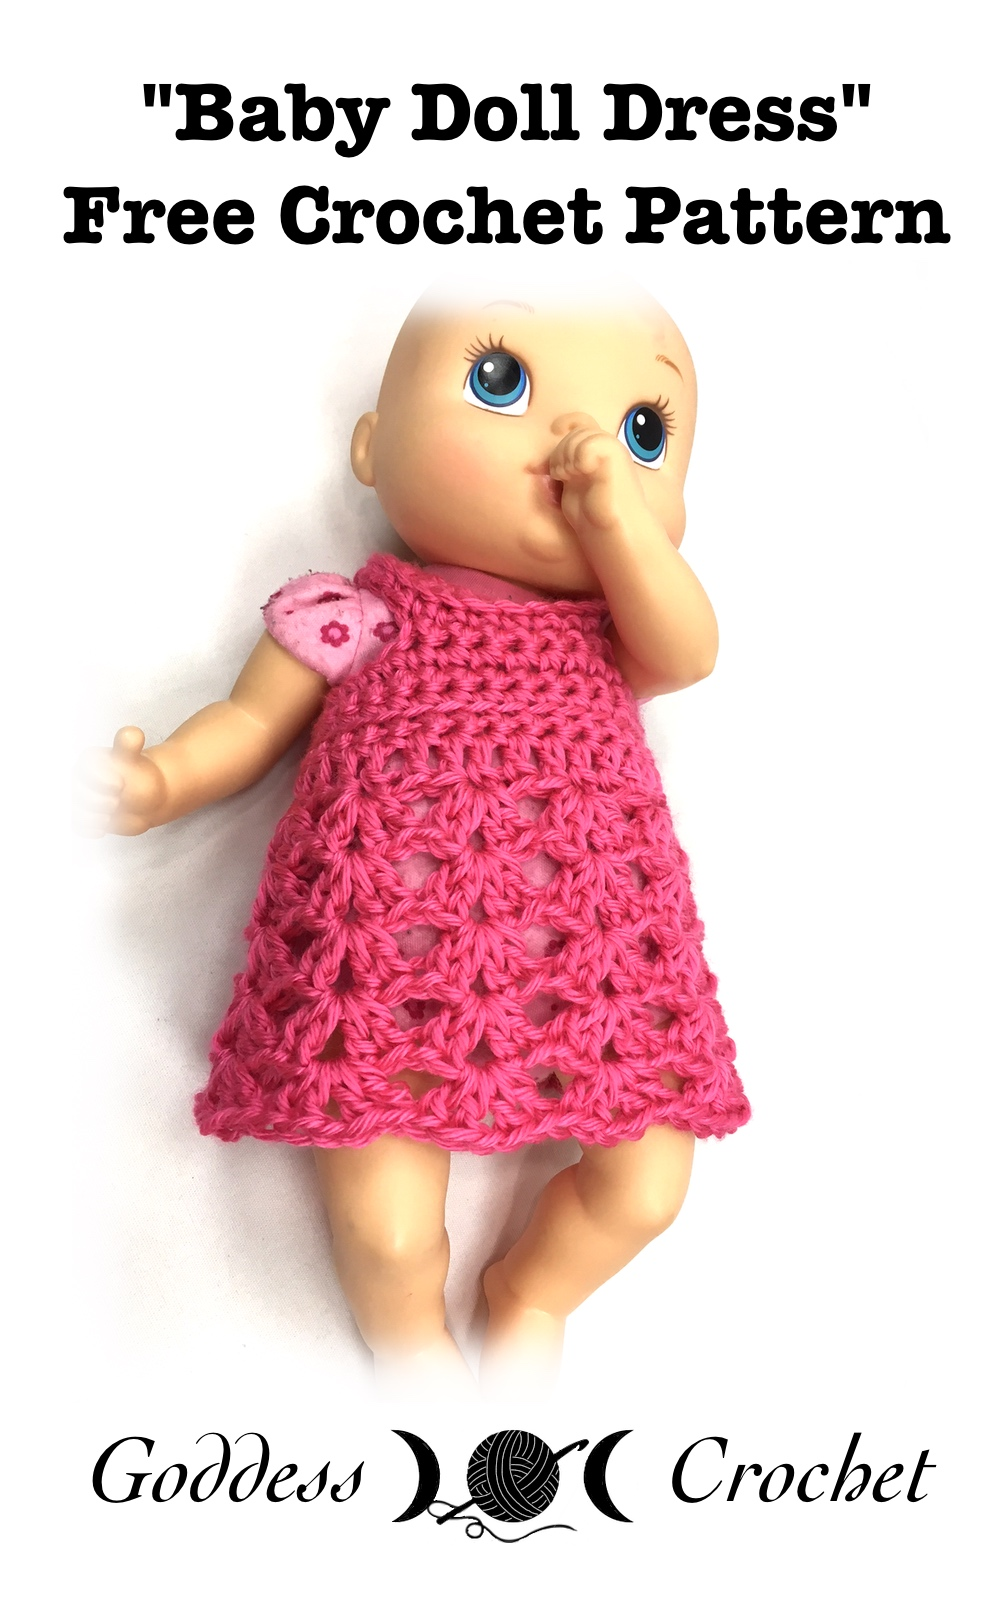 Baby Doll Dress Crochet Pattern Goddess